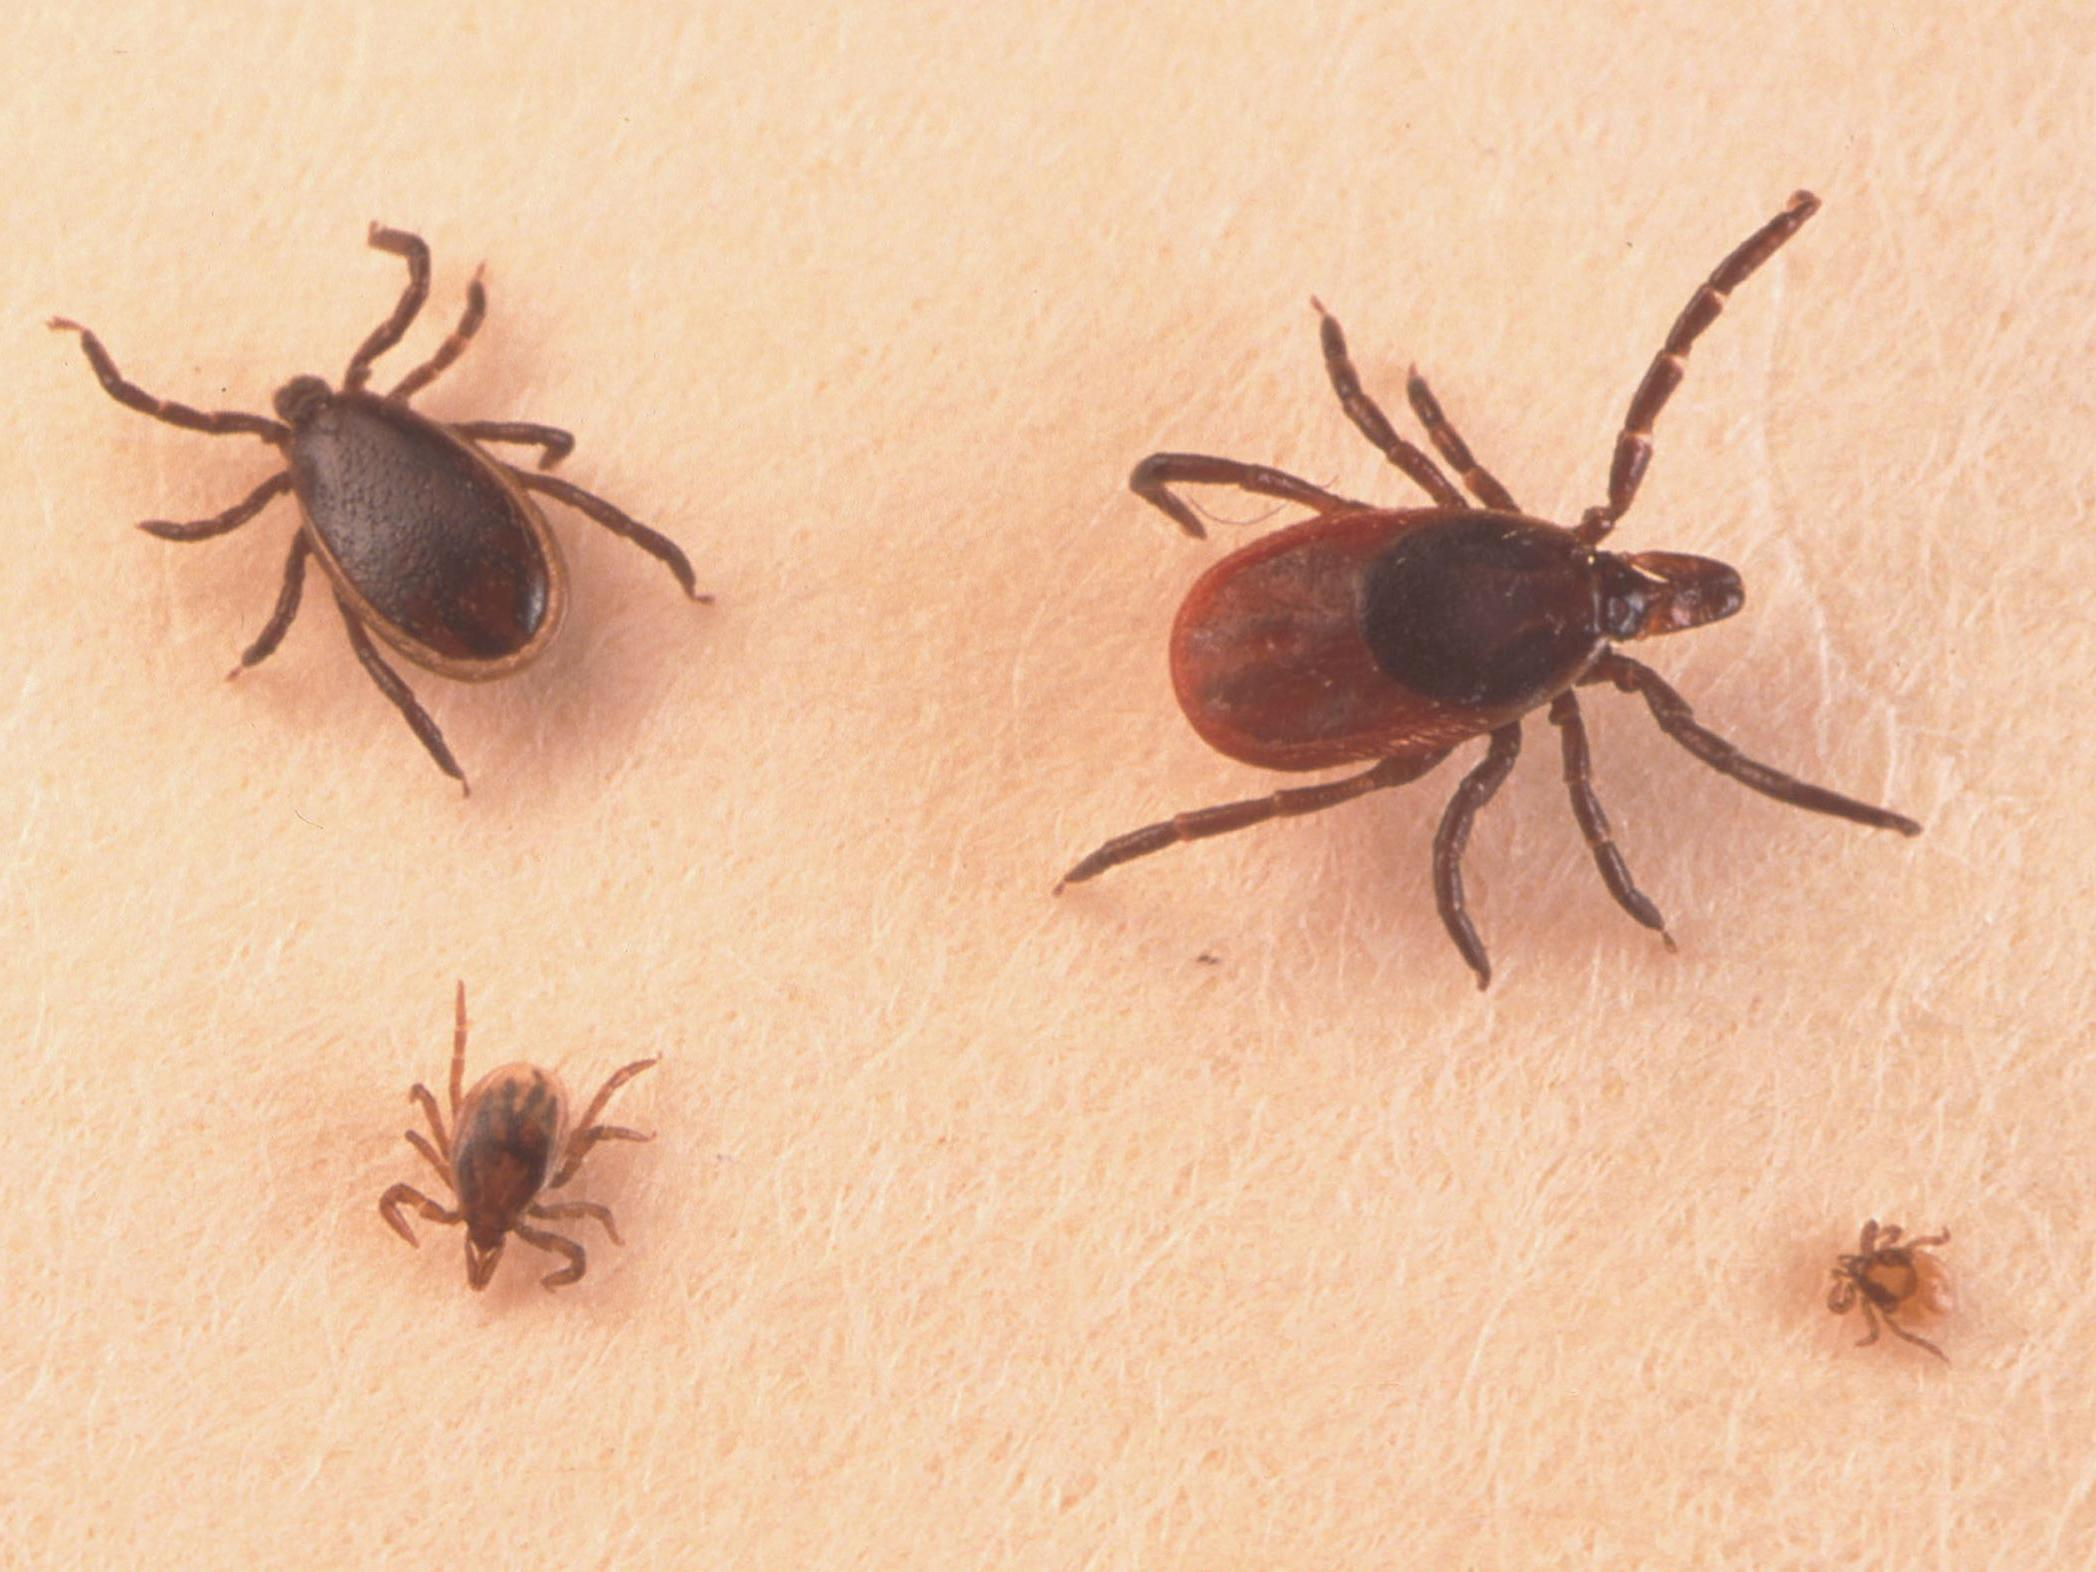 Ticks 'used as biological weapon by USA military' claim experts